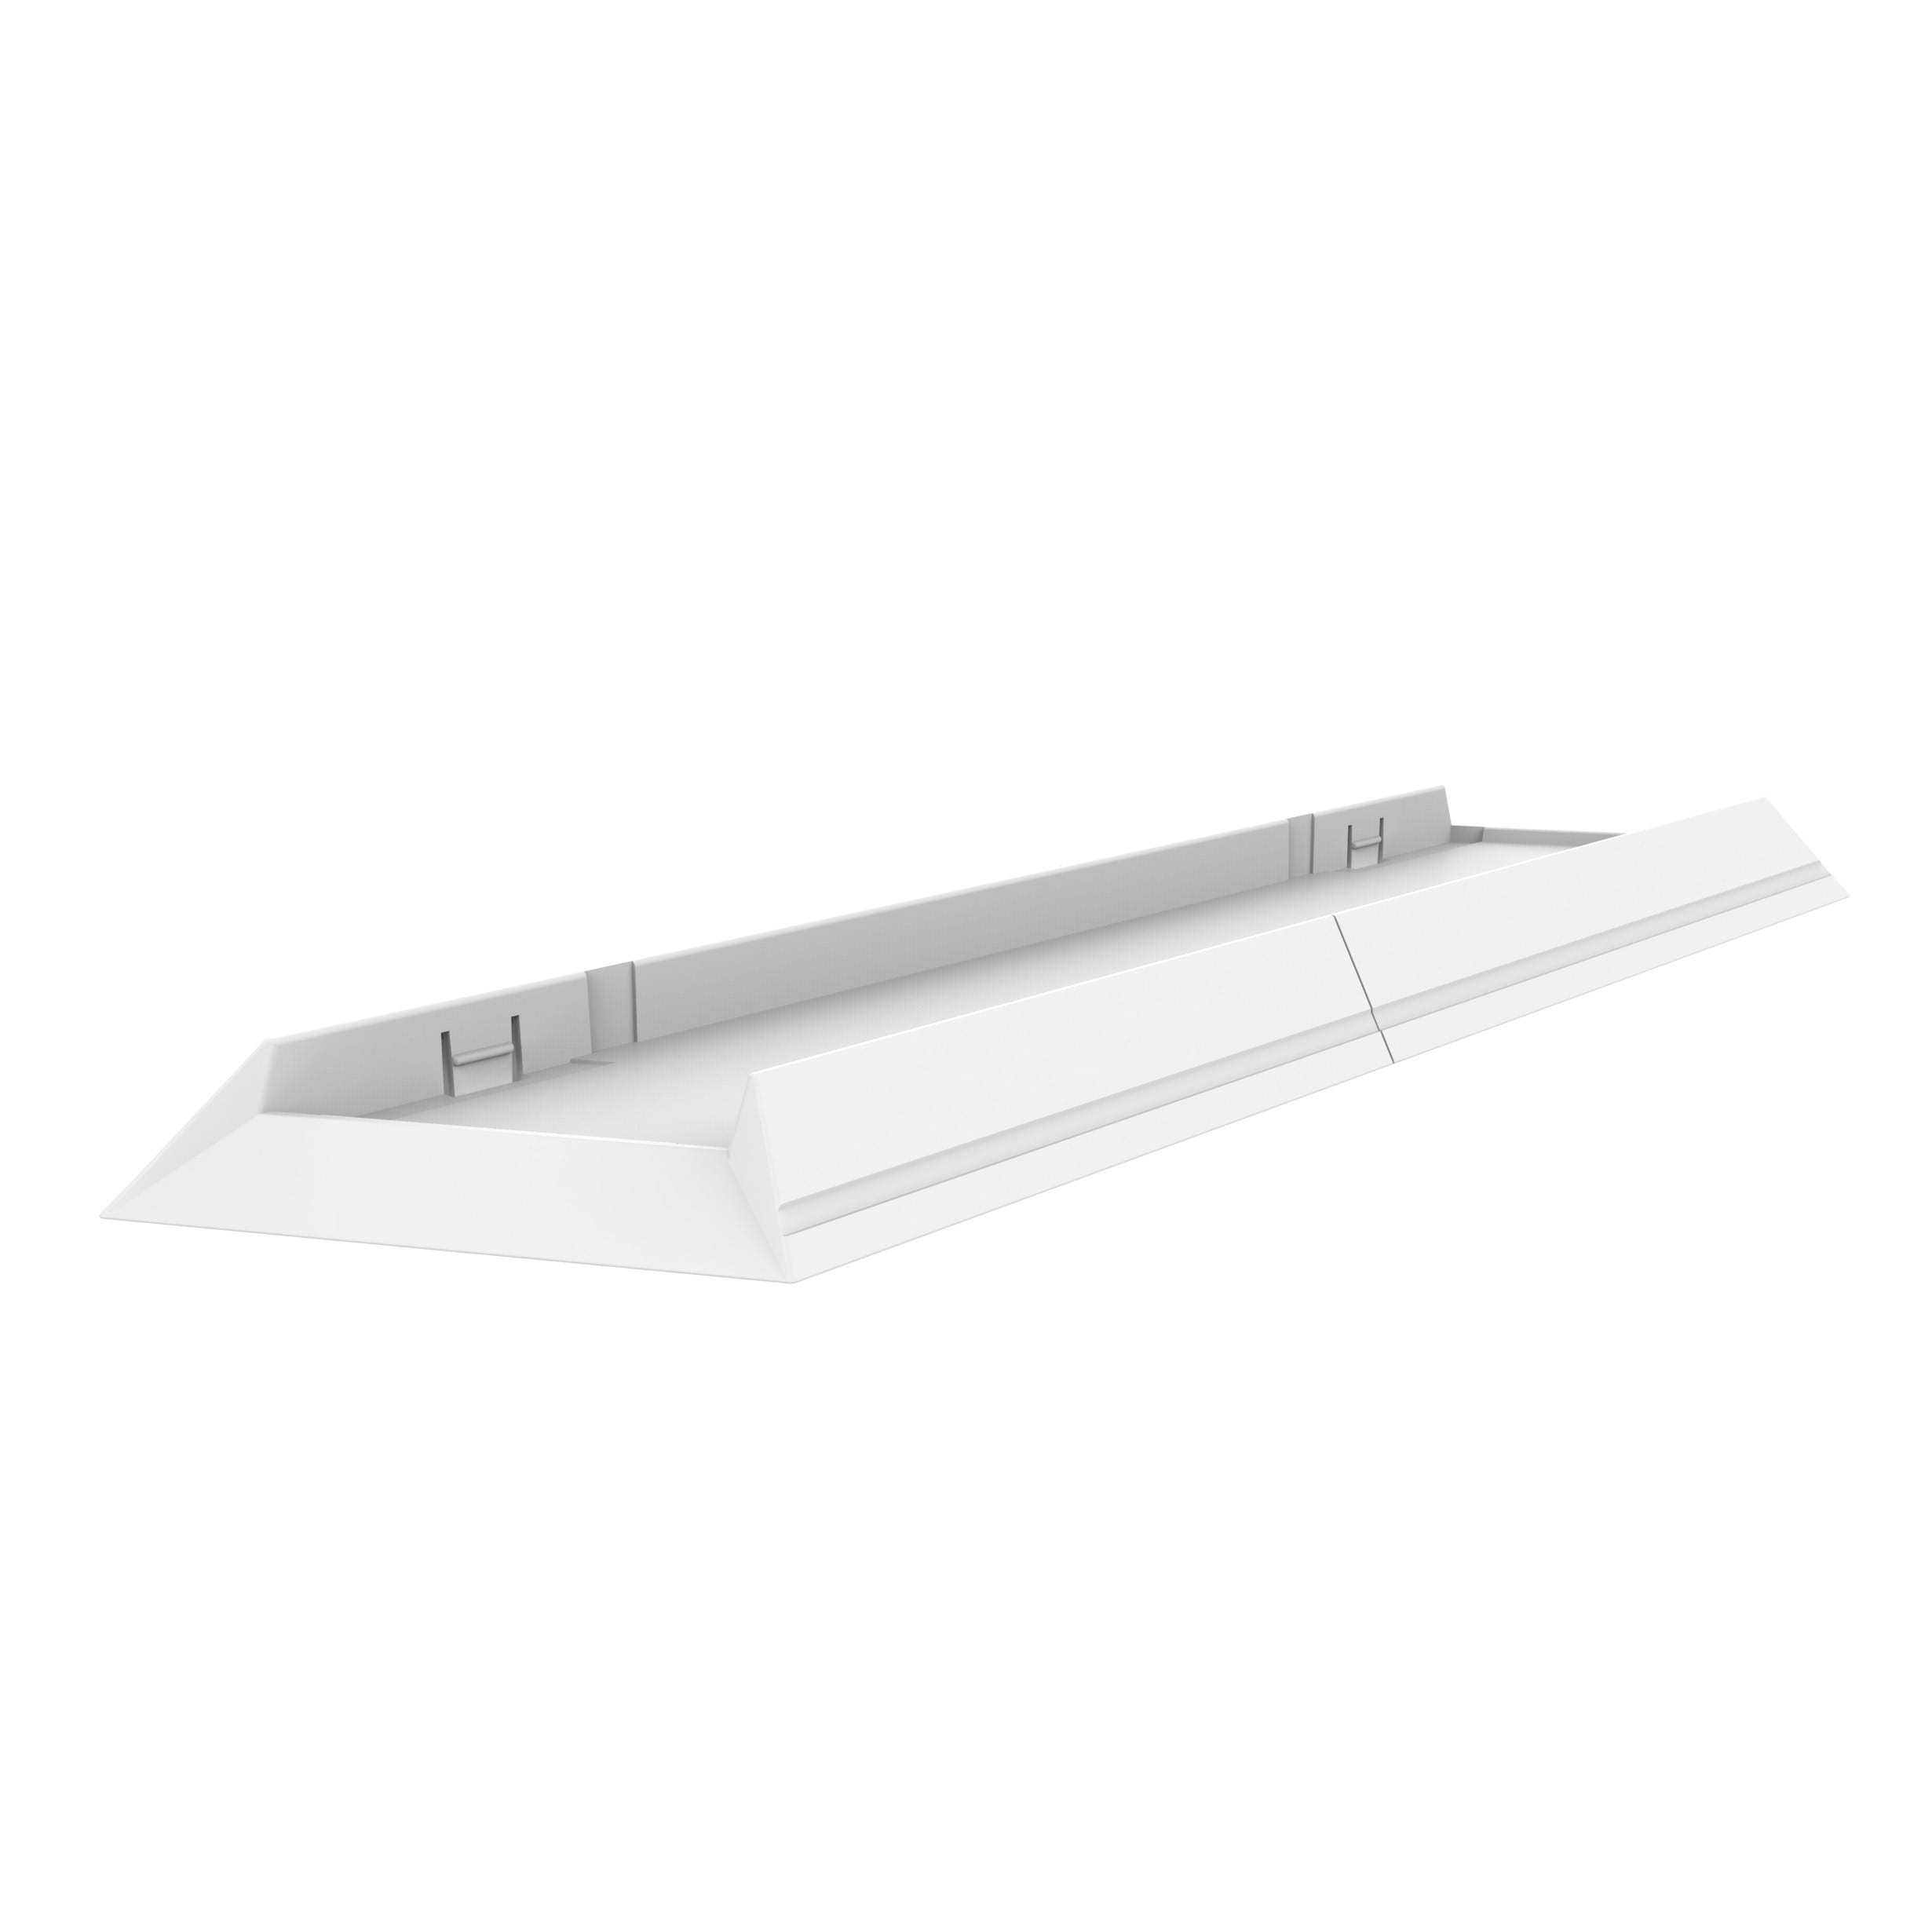 SparkFox Vertical Stand White - PS4